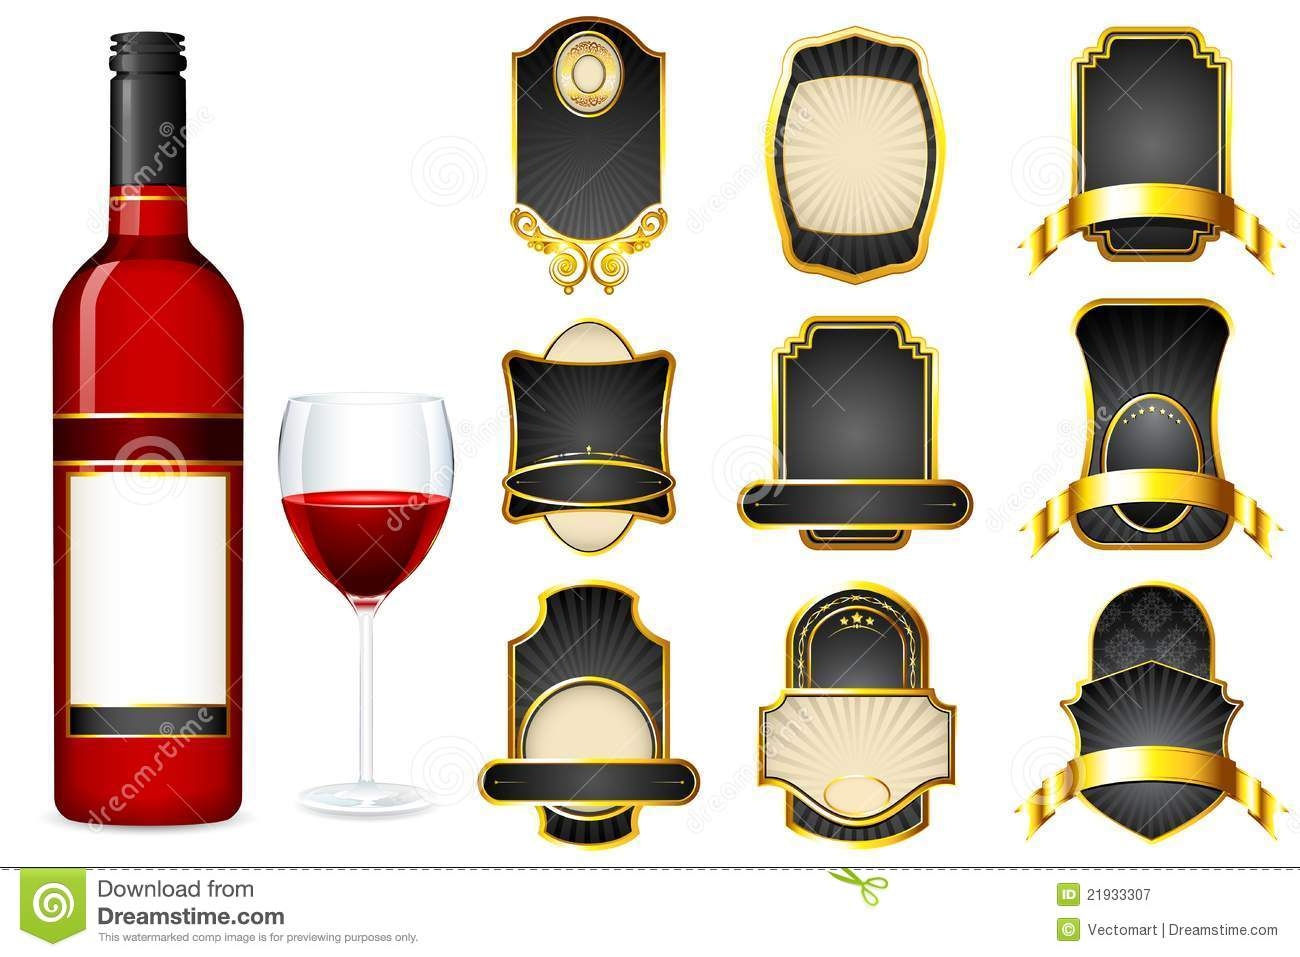 liquor label template printable label templates. Black Bedroom Furniture Sets. Home Design Ideas